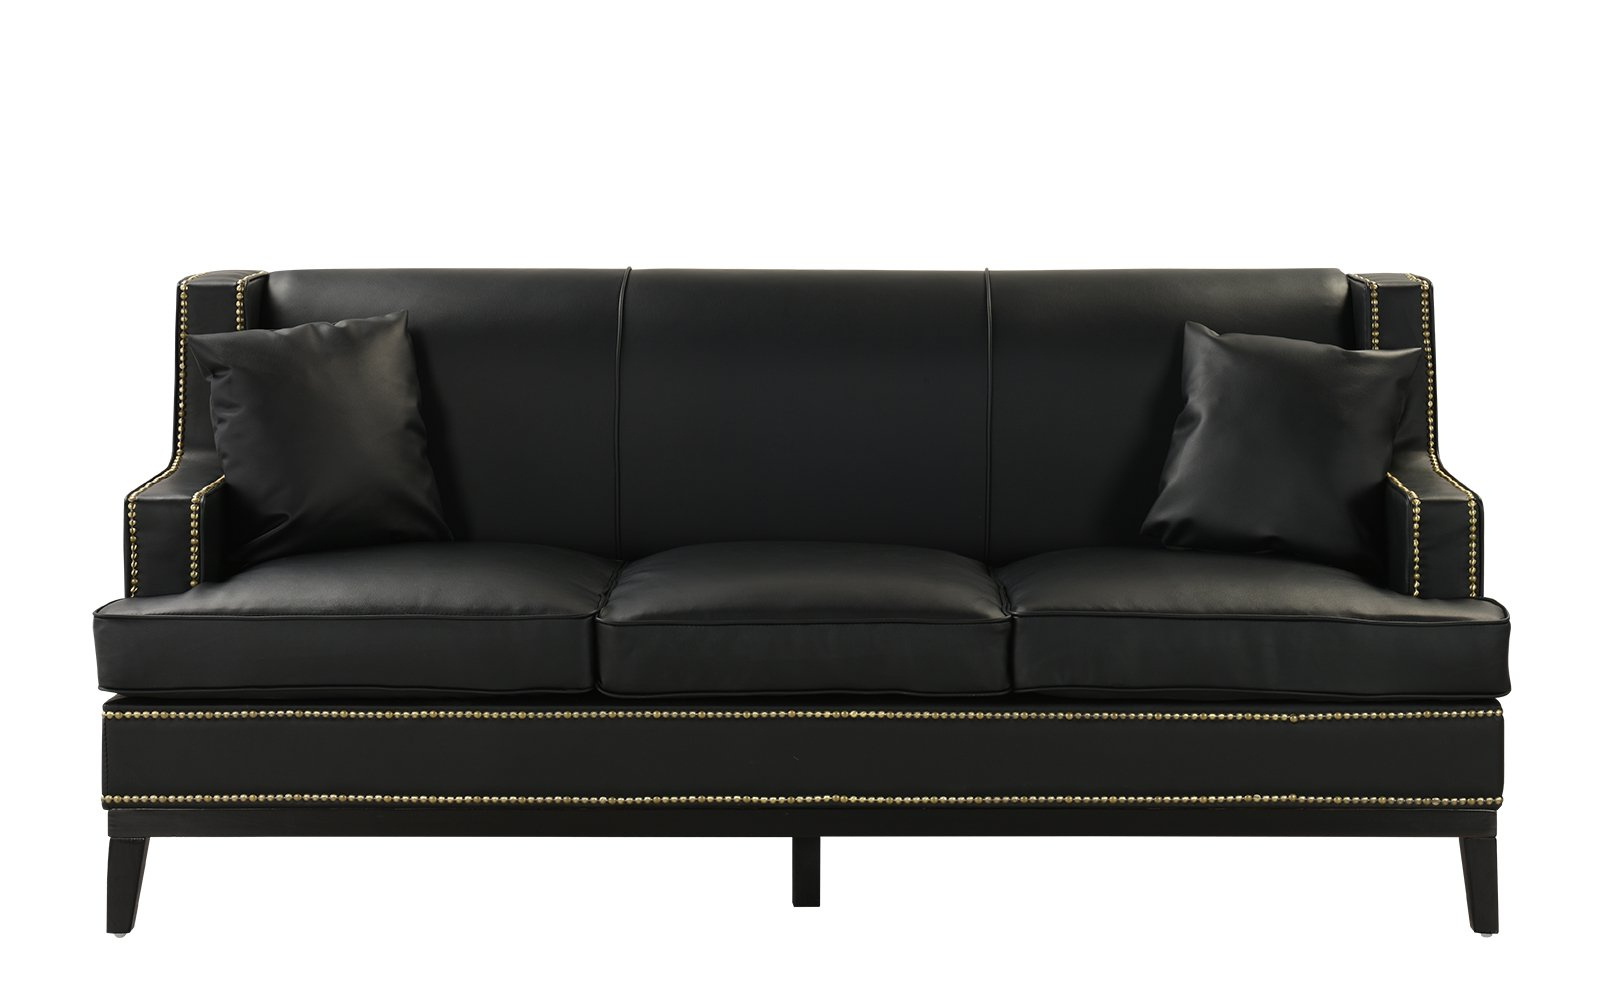 Fashionable Black Modern Bonded Leather Sofa With Nailhead Trim Detail Within Bonded Leather All In One Sectional Sofas With Ottoman And 2 Pillows Brown (View 14 of 25)